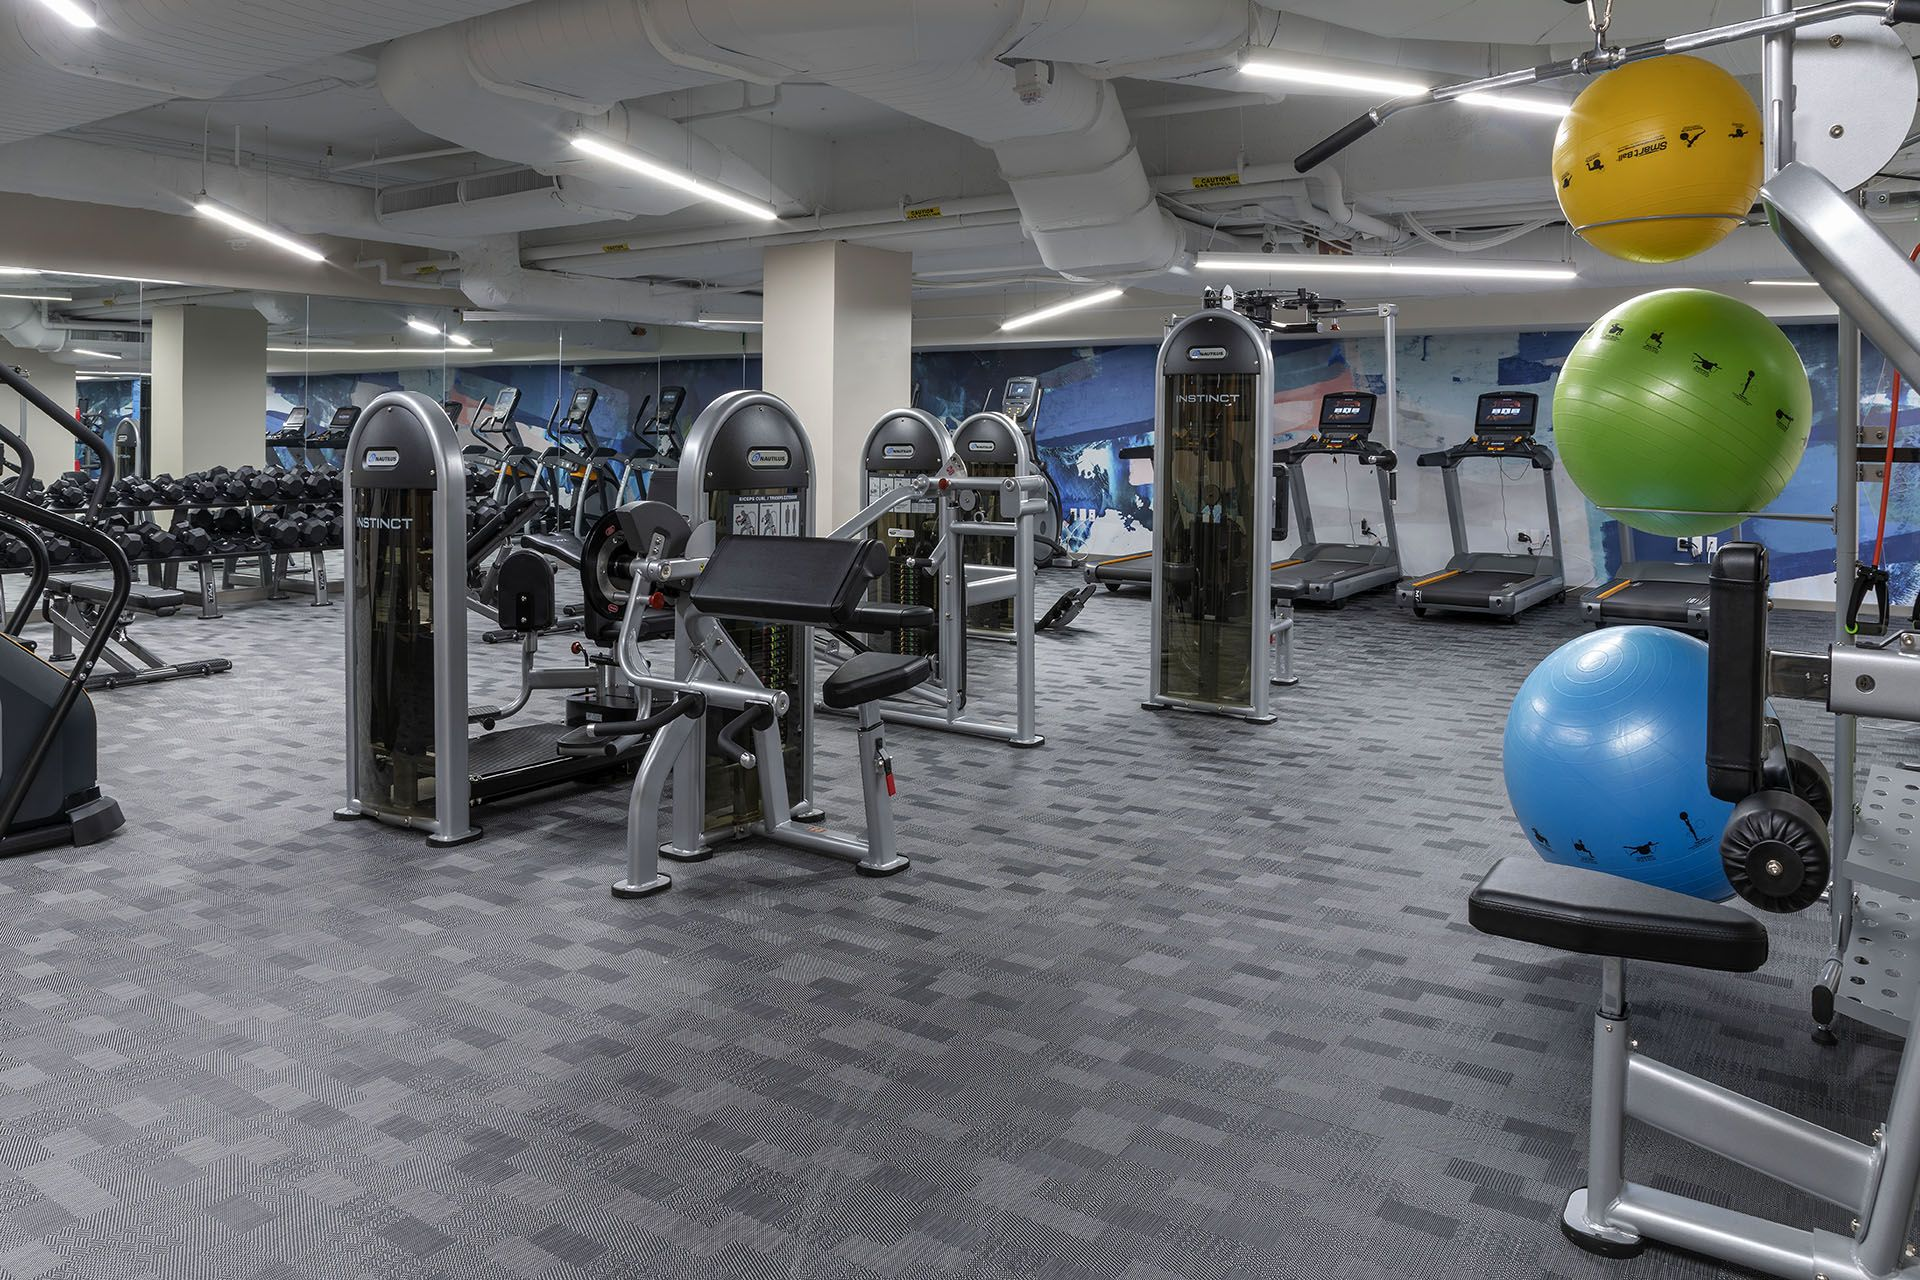 workout equipment in fitness center